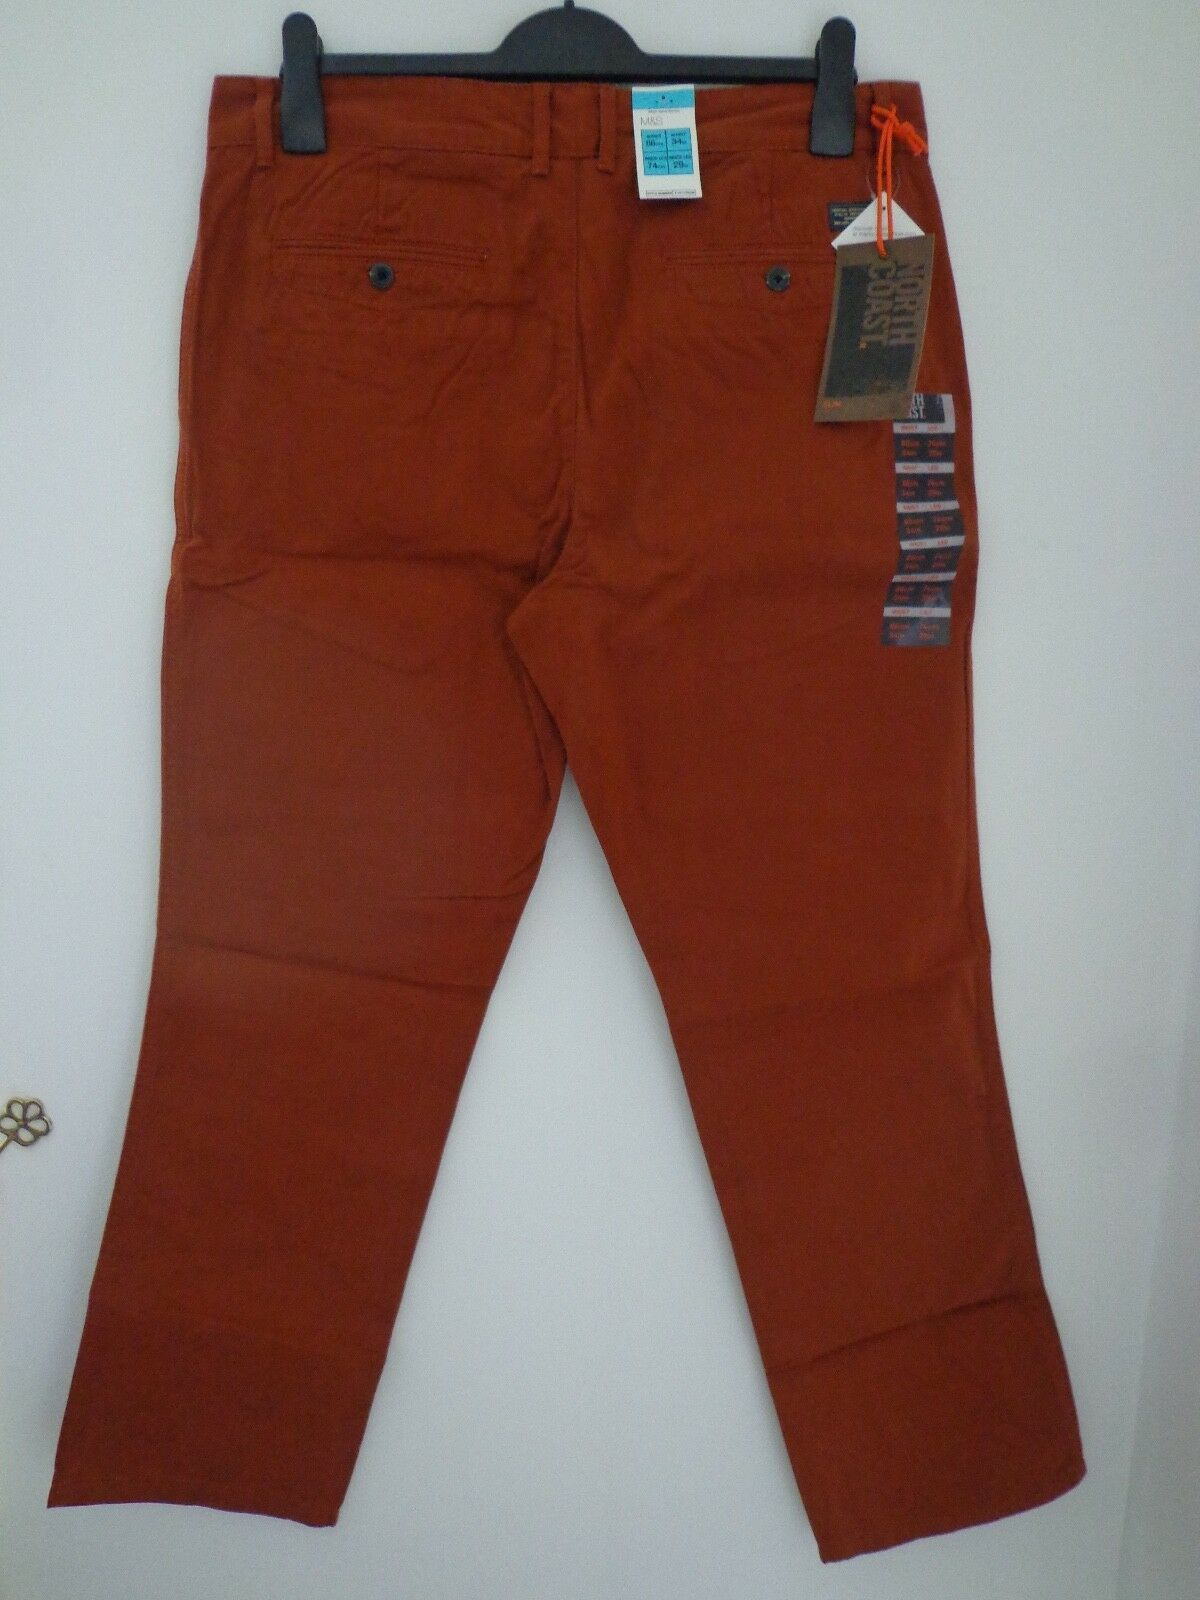 BNWT Homme m&s côte nord Slim gamme Coupe Slim nord Pantalon Chino Taille 34